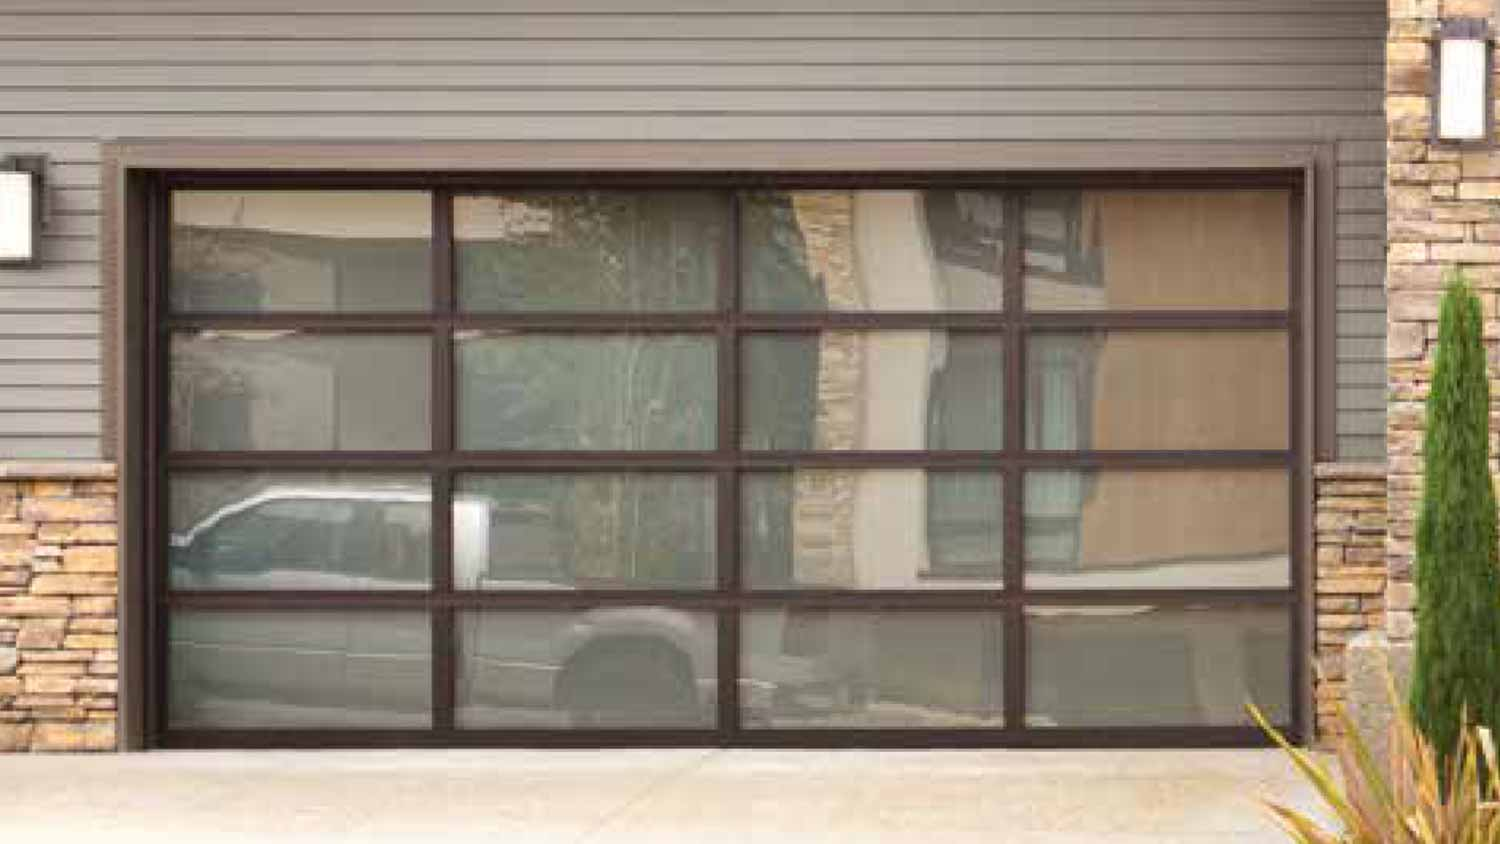 hight resolution of wayne dalton contemporary aluminum doors are made with a rugged anodized aluminum frame featuring equal panel spacing for a clean modern style